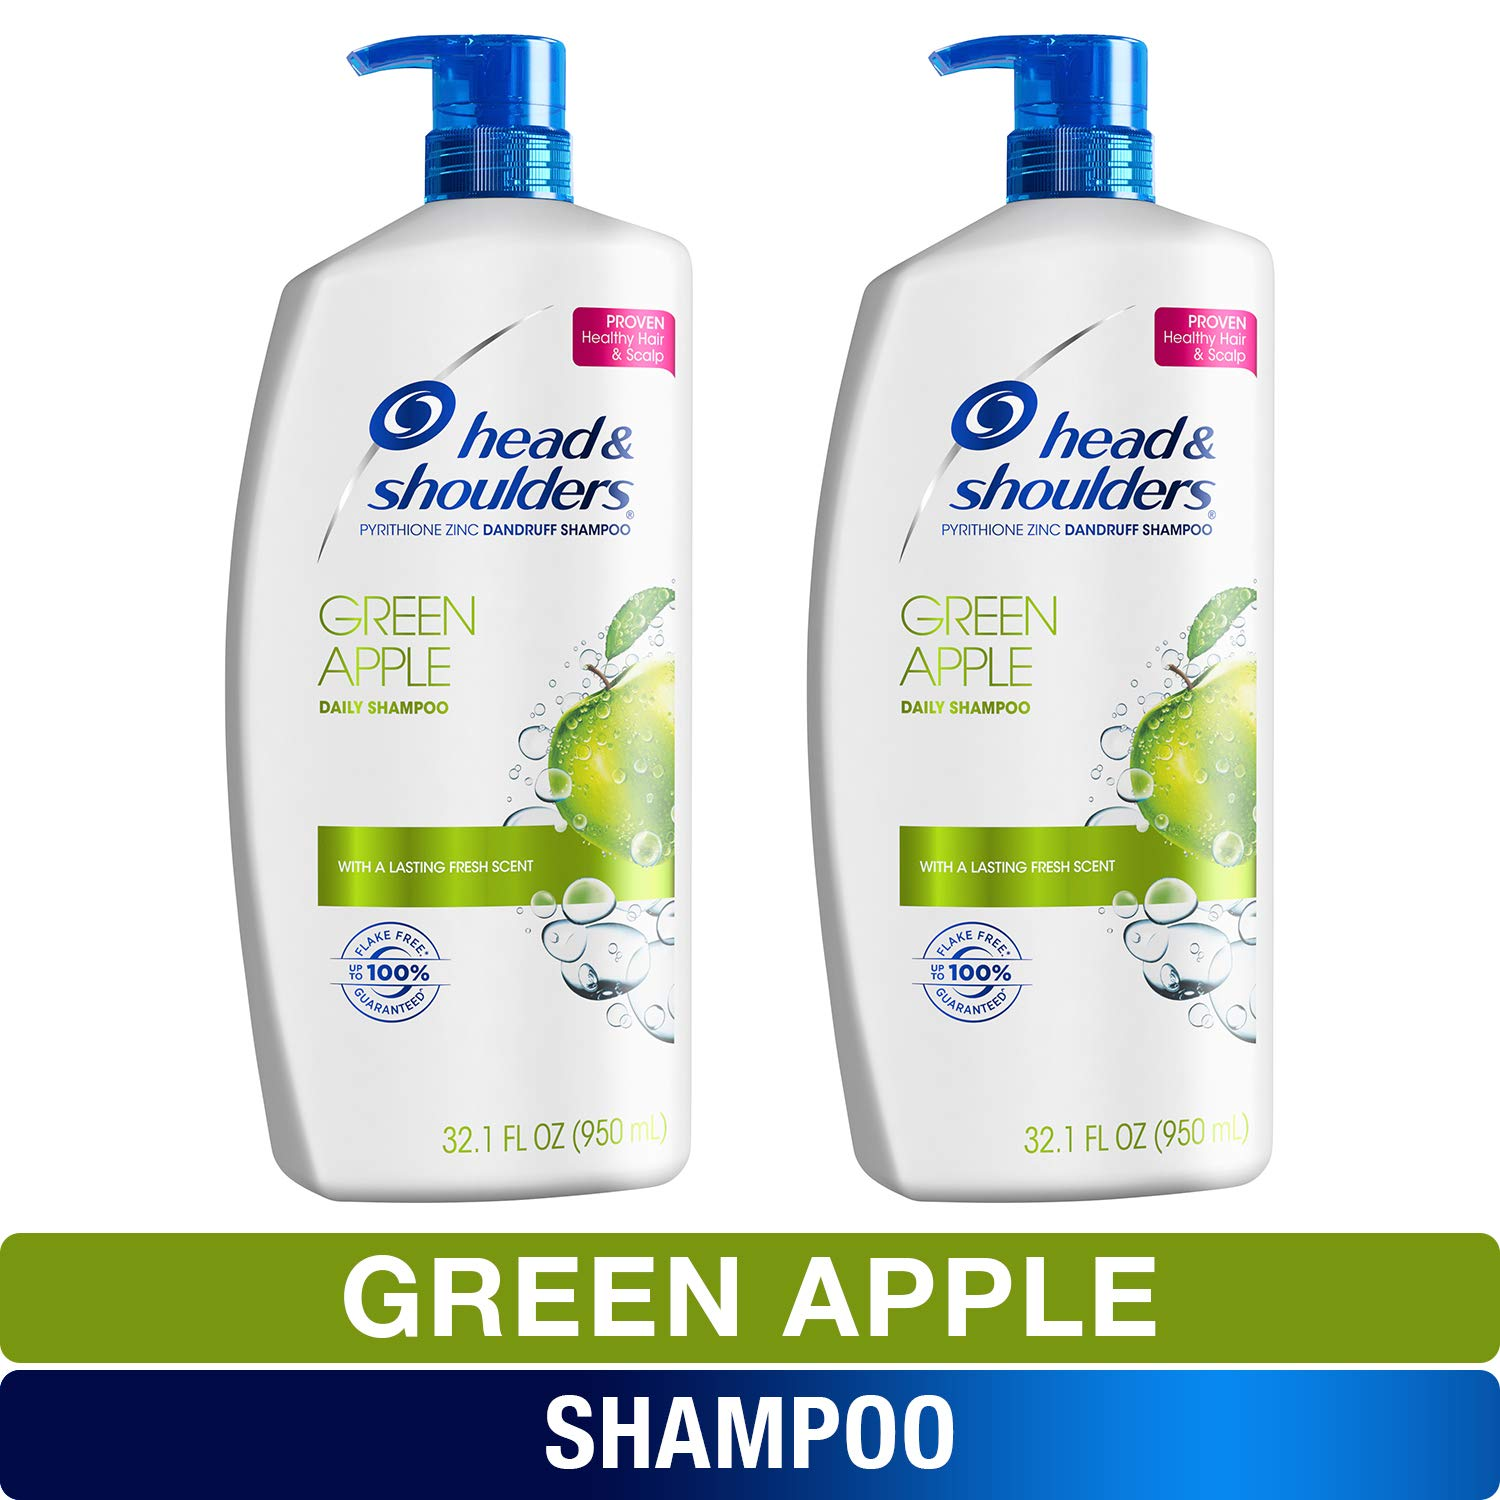 Head and Shoulders Shampoo, Anti Dandruff Treatment and Scalp Care, Green Apple, 32.1 fl oz, Twin Pack